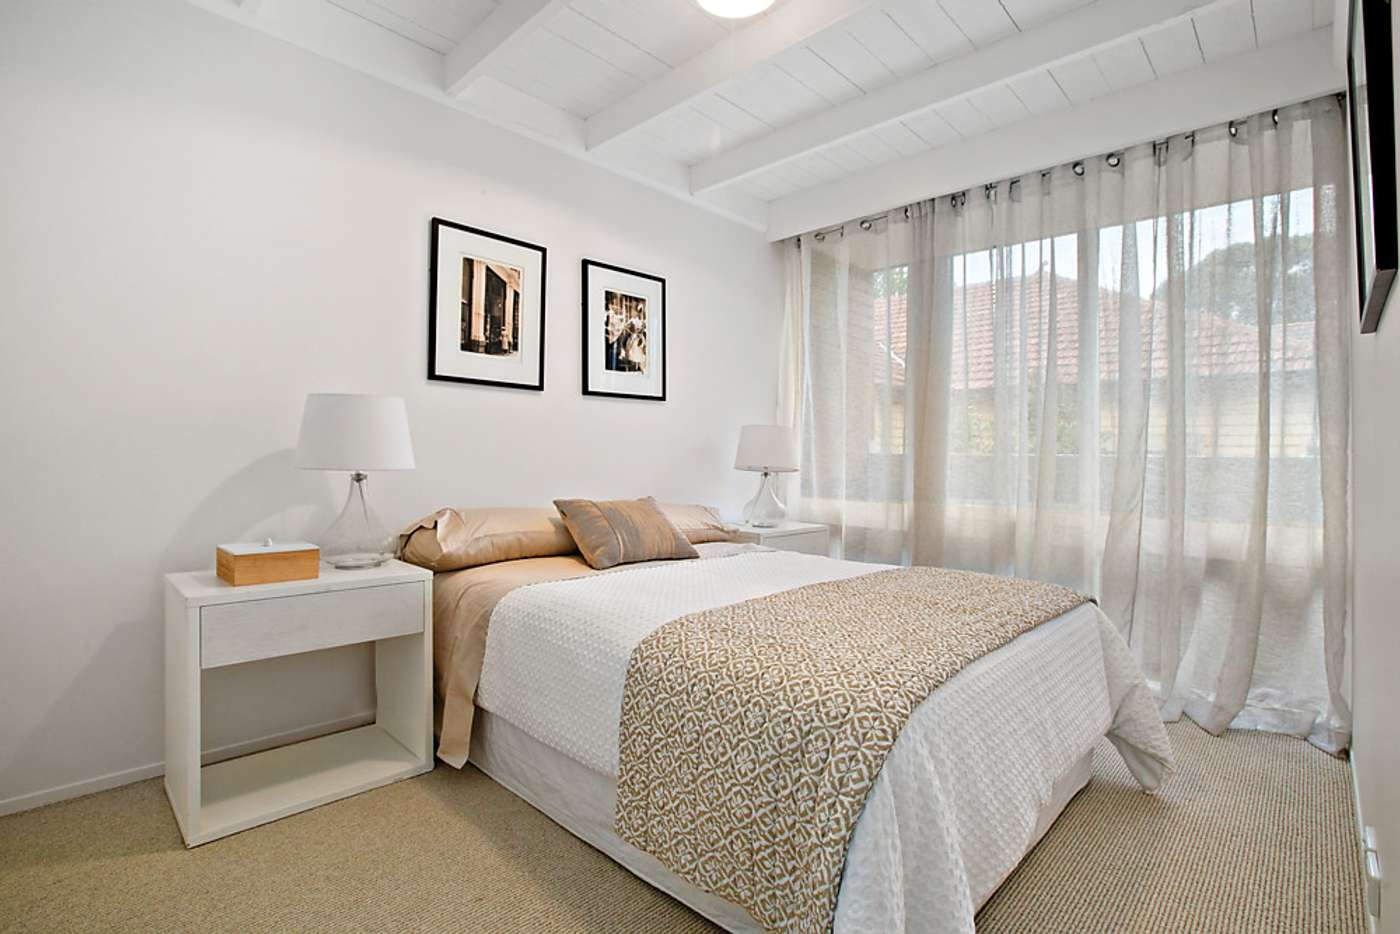 Sixth view of Homely apartment listing, 17/10-16 White Street, Glen Iris VIC 3146